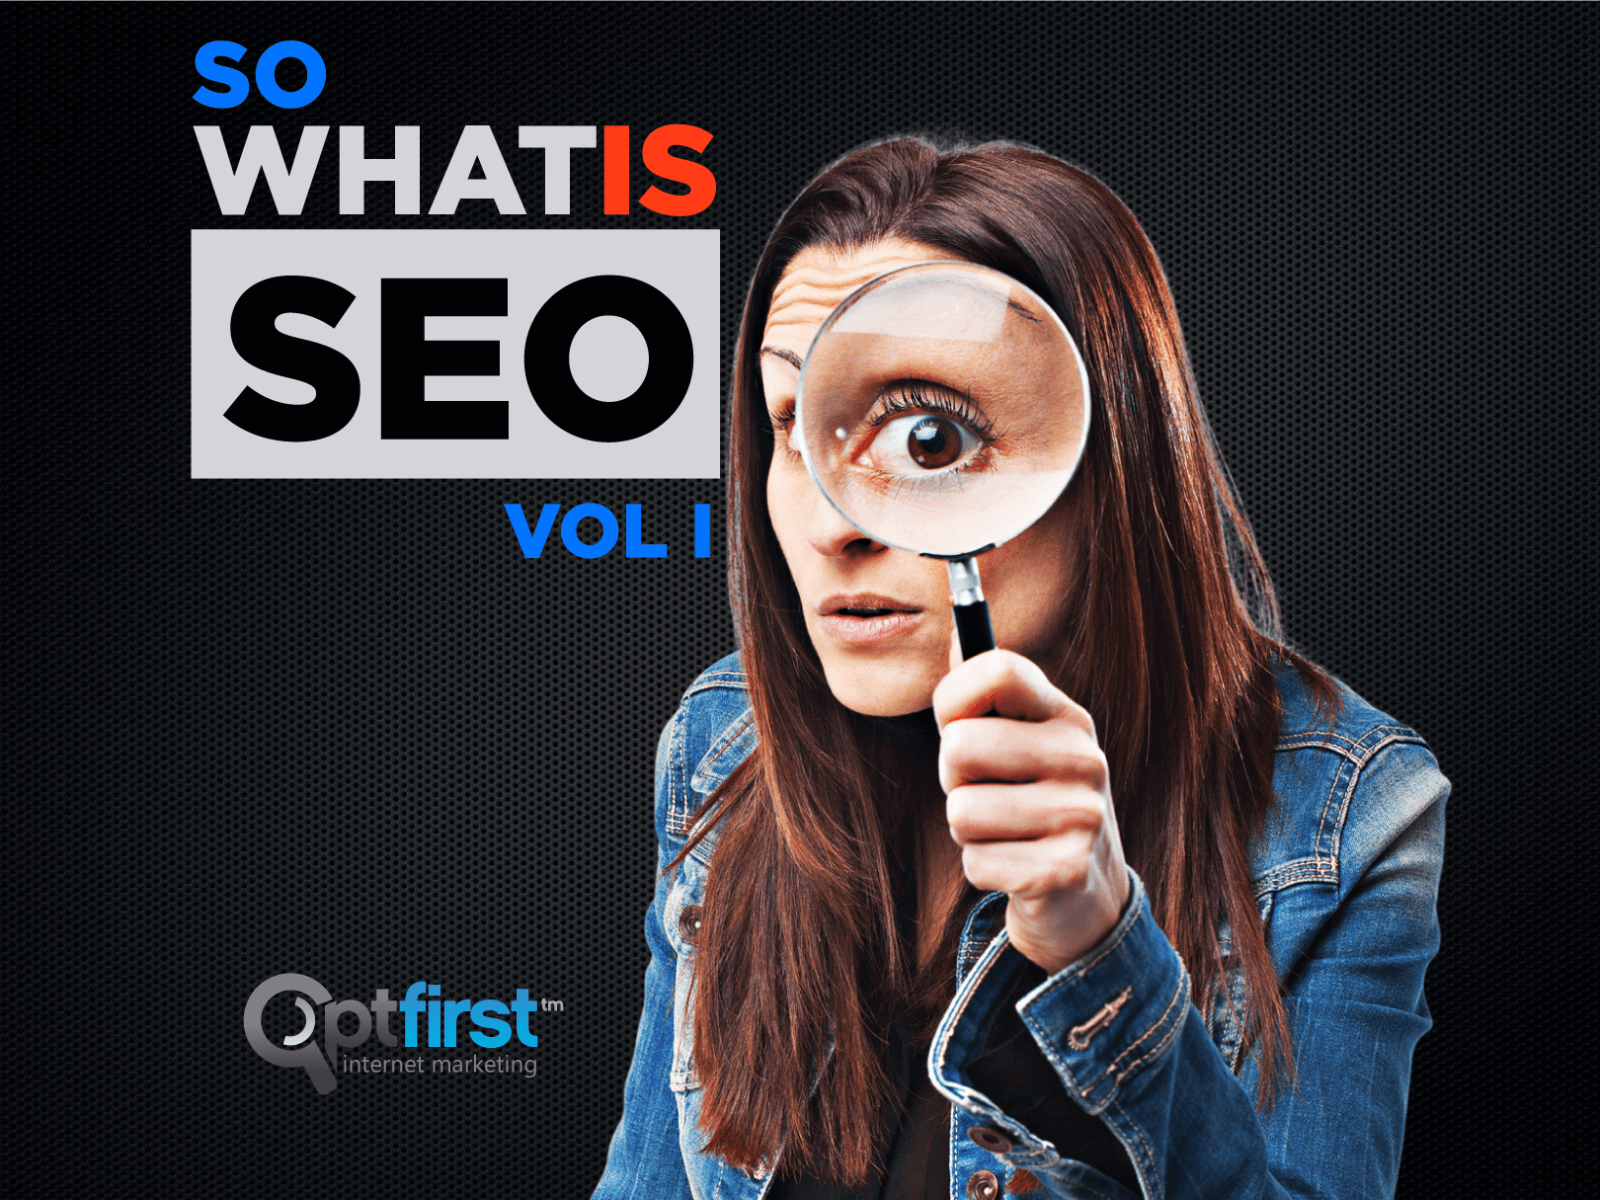 So, what is SEO? Vol I